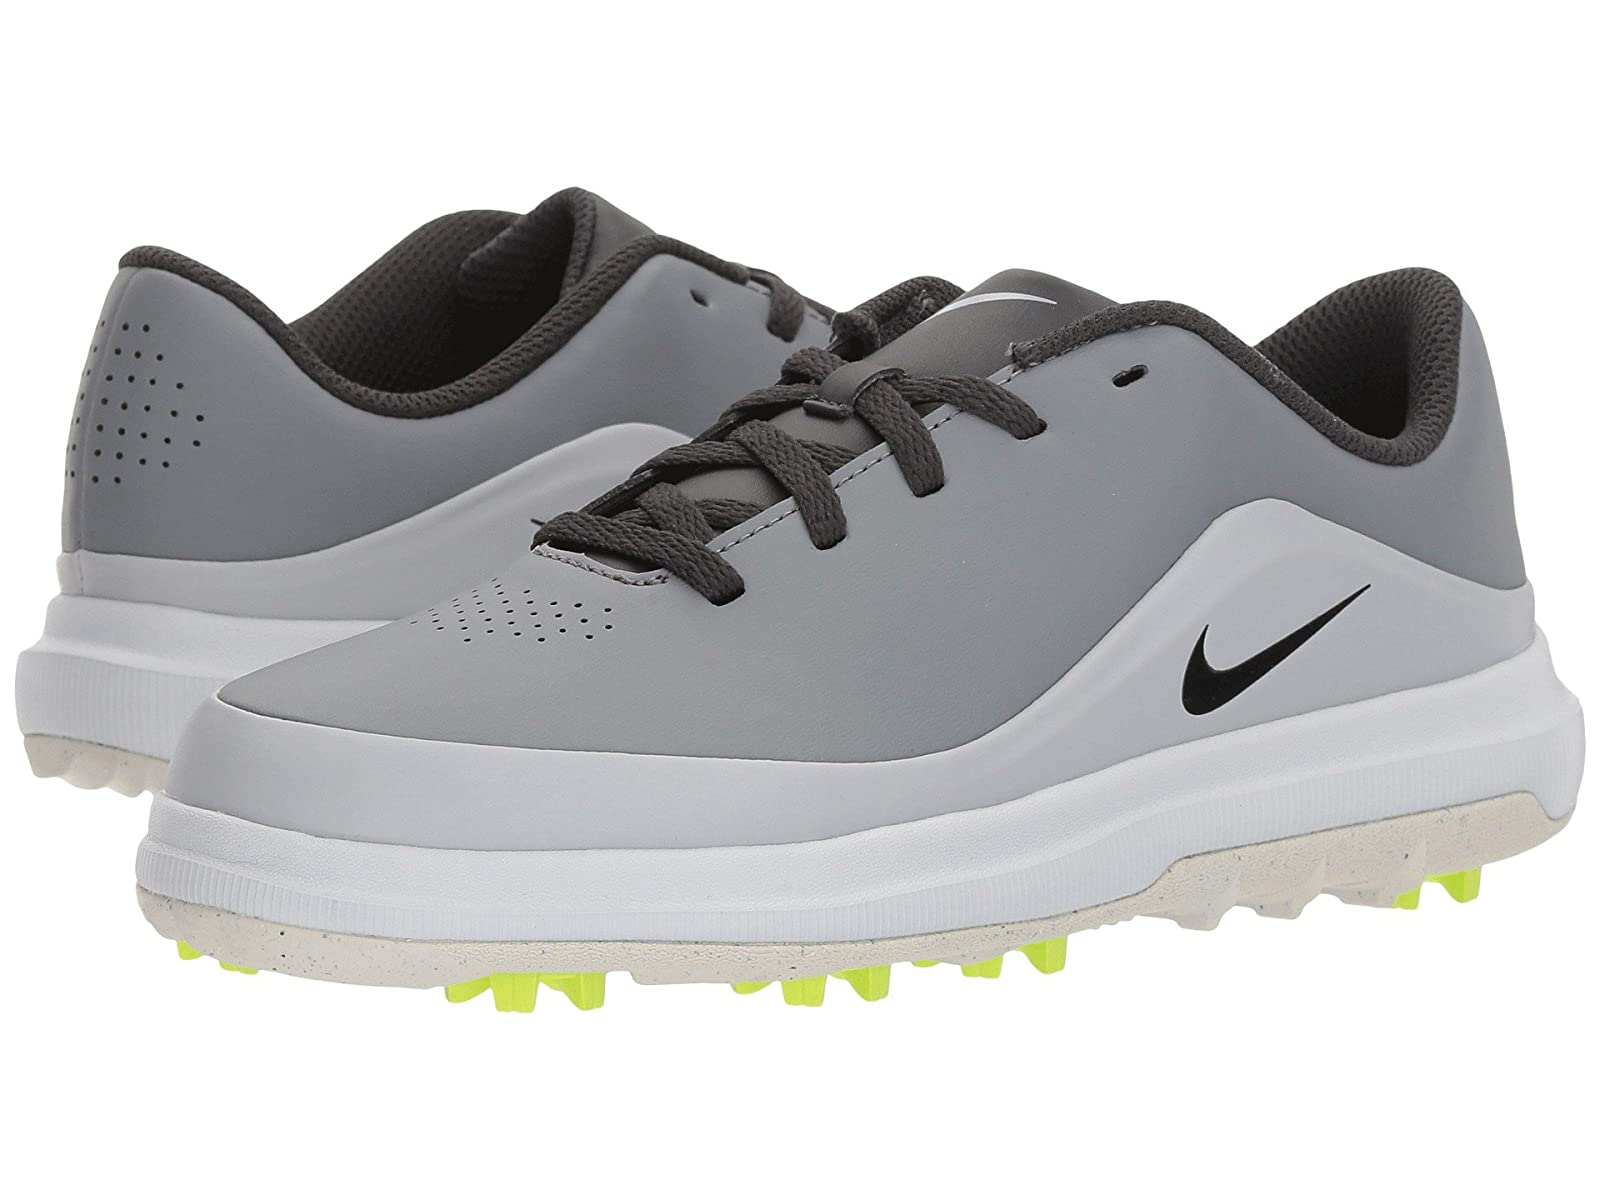 Nike Golf Precision (Little Kid/Big Kid)Atmospheric grades have affordable shoes